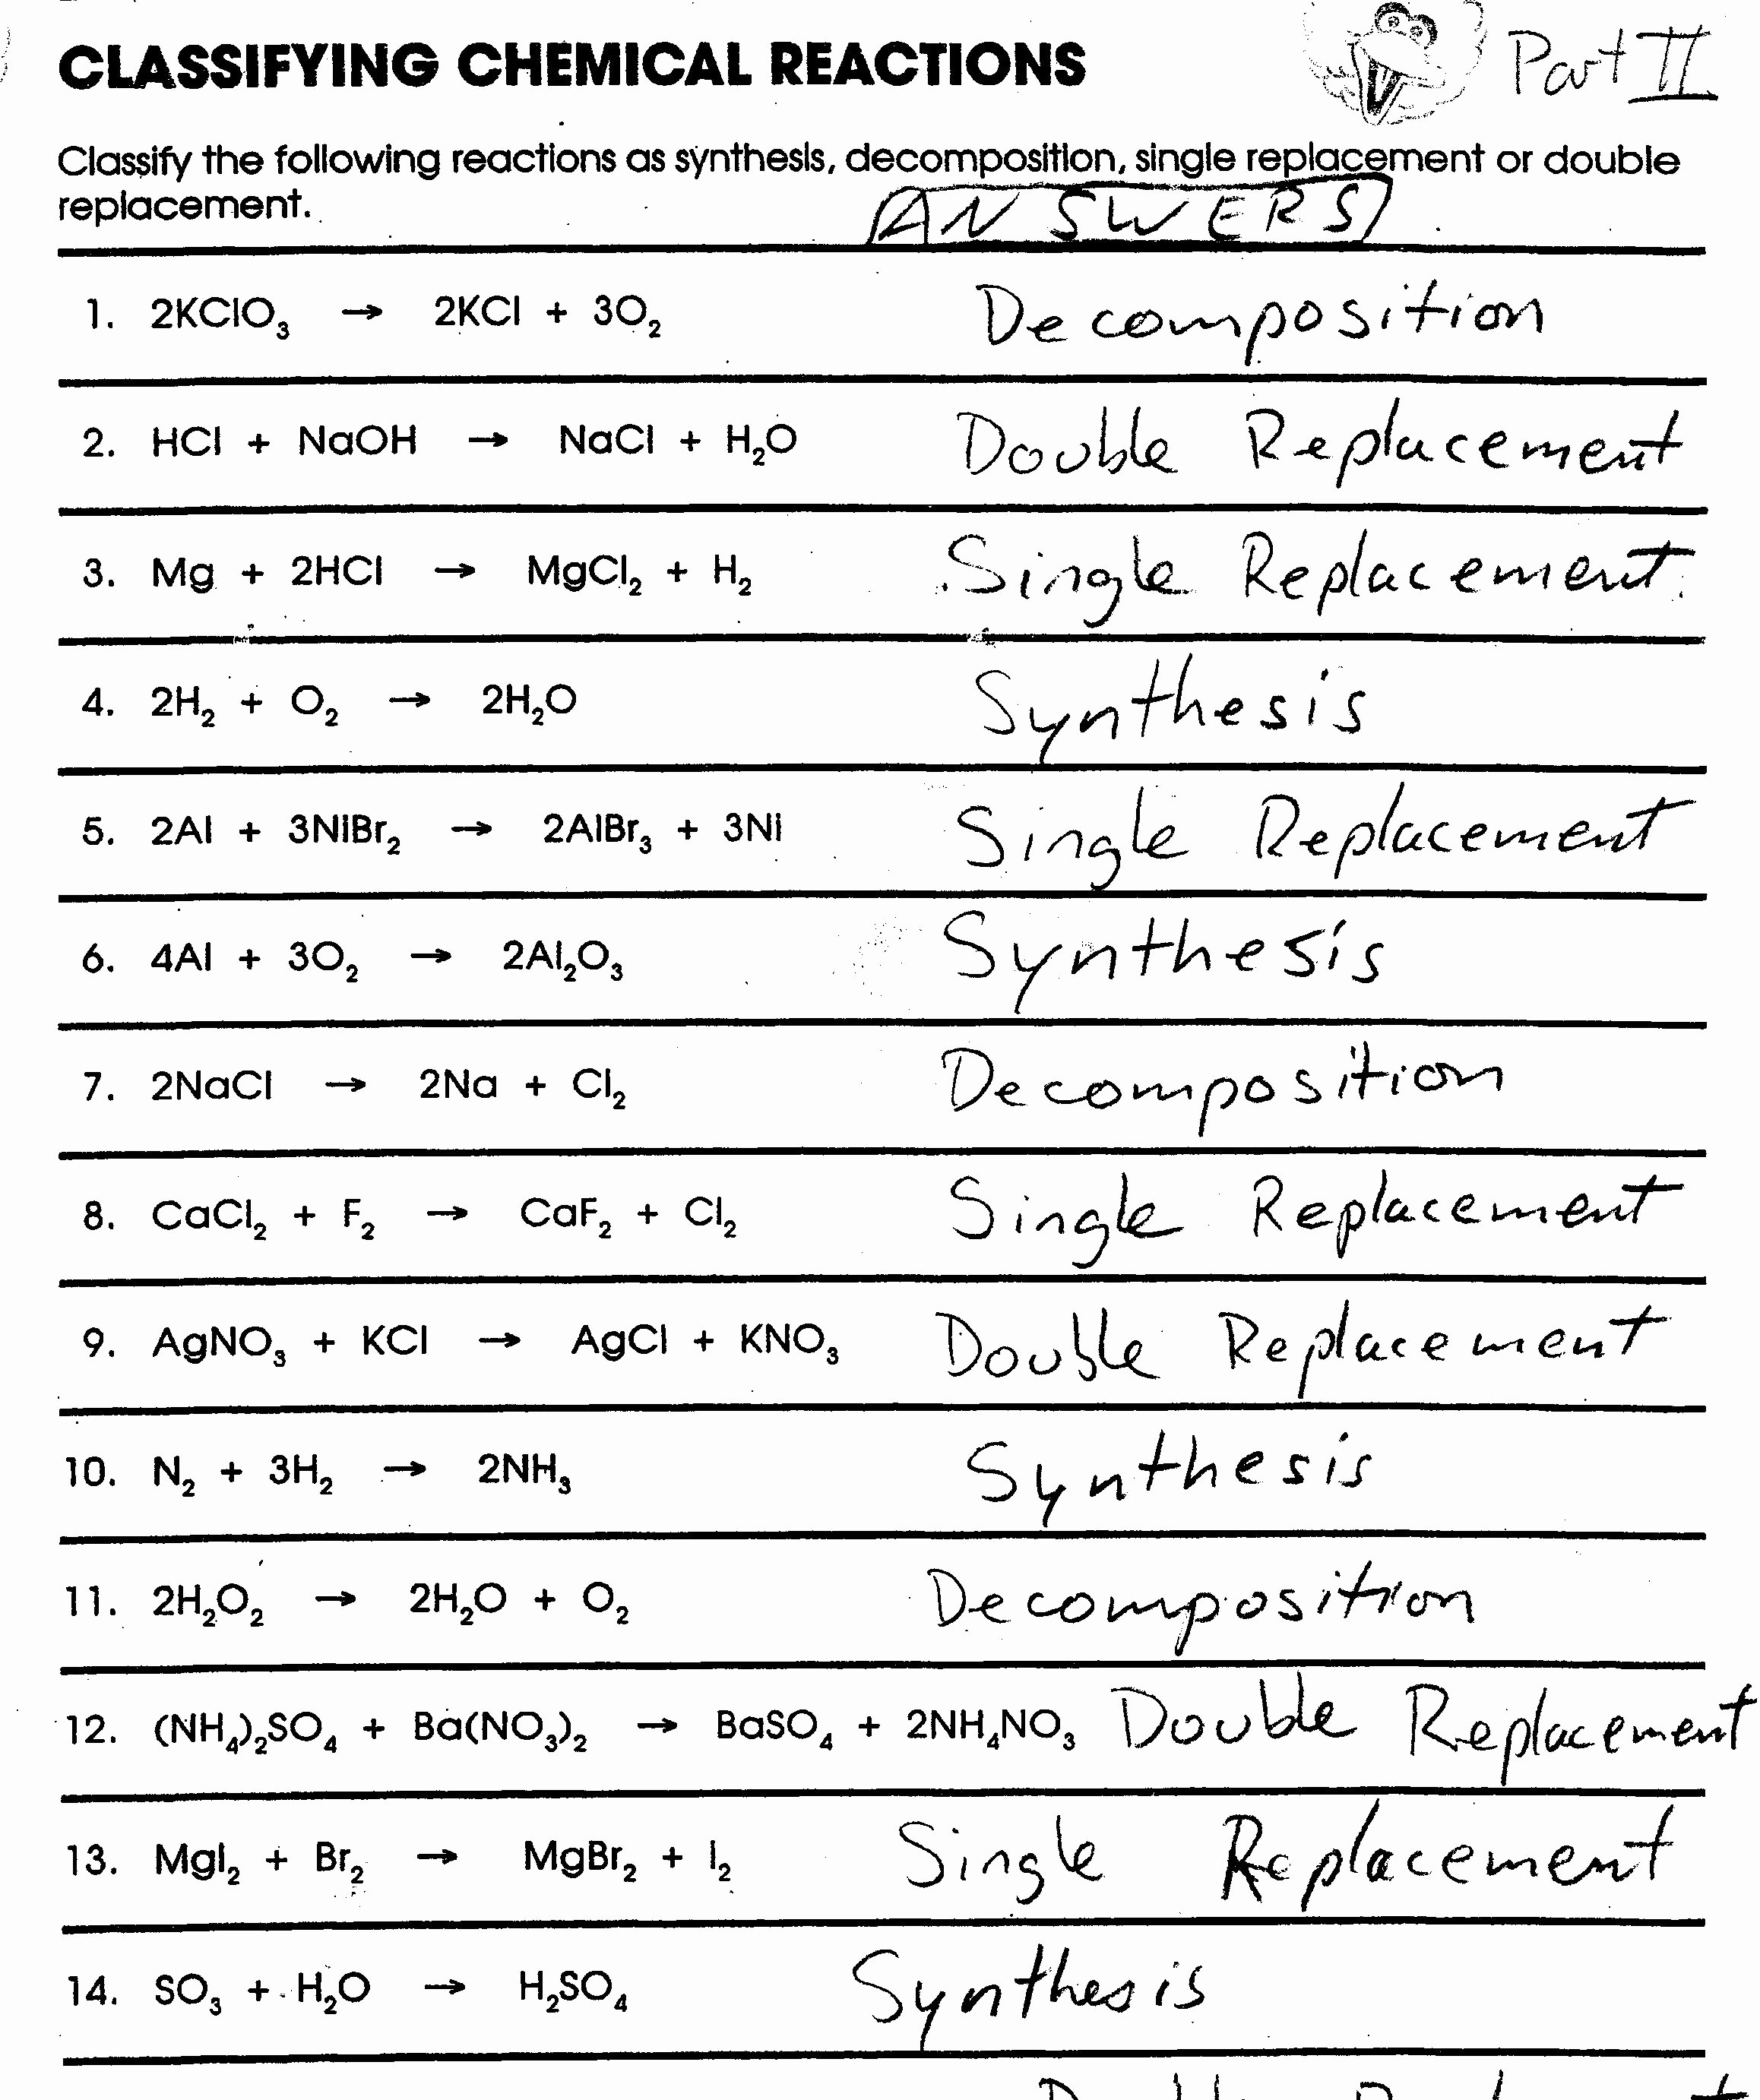 Classifying Chemical Reactions Lab Worksheet Answers